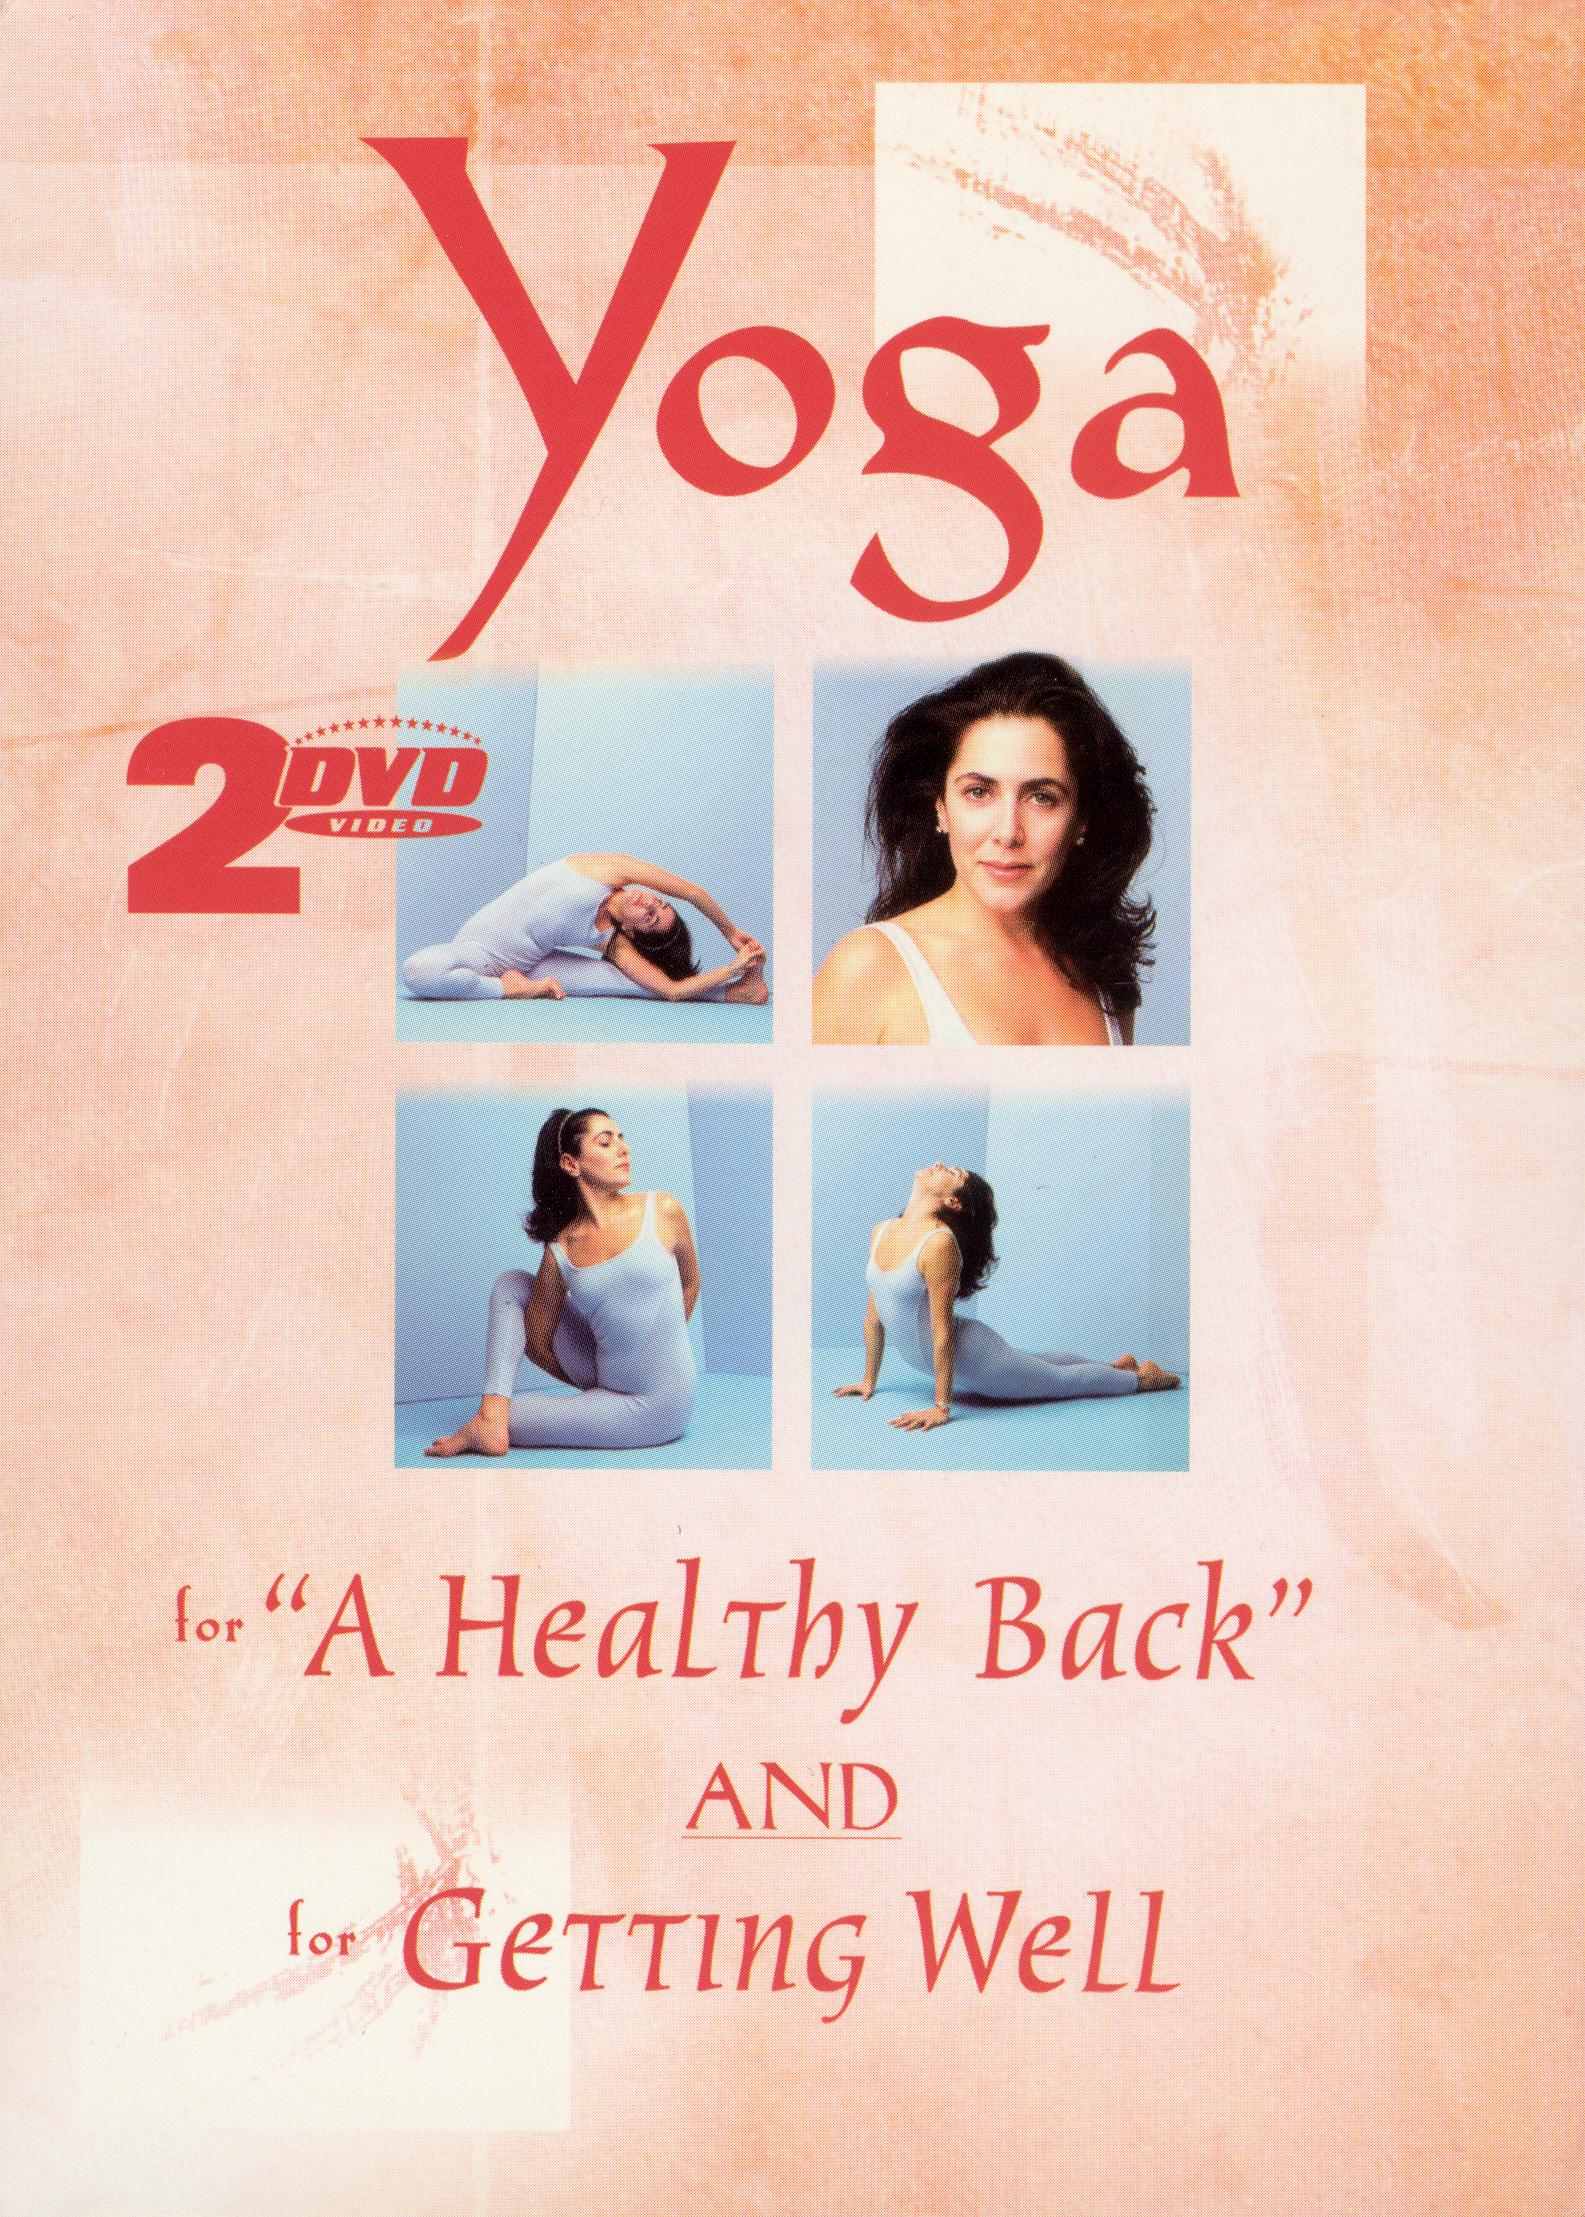 Yoga, Vol. 3: For a Healthy Back and for Getting Well